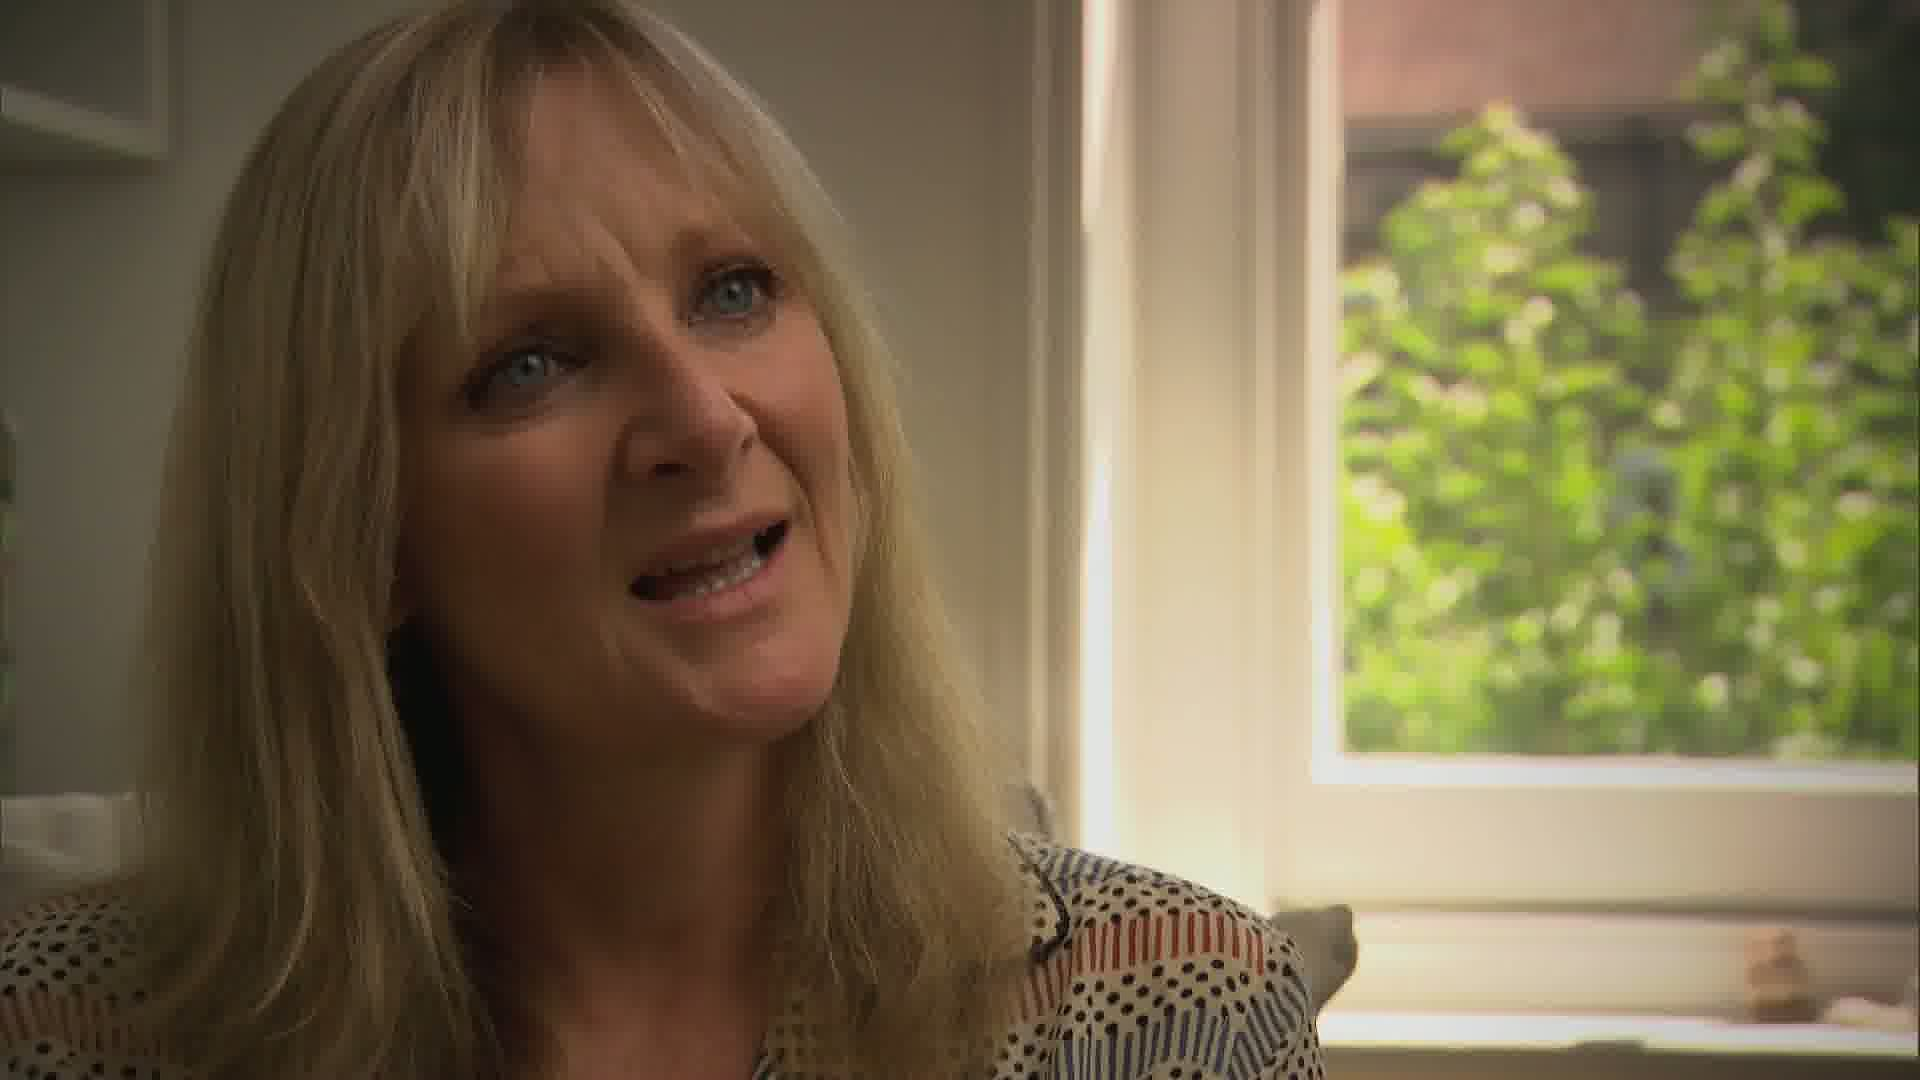 lesley sharp weight losslesley sharp and nicholas gleaves, lesley sharp actress, lesley sharp photos, lesley sharp husband, lesley sharp, lesley sharp anthropology, lesley sharp weight loss, lesley sharp imdb, lesley sharp age, lesley sharp biography, lesley sharp in downton abbey, lesley sharp doctor who, lesley sharp afterlife, lesley sharp twitter, lesley sharp lost weight, lesley sharp feet, lesley sharp net worth